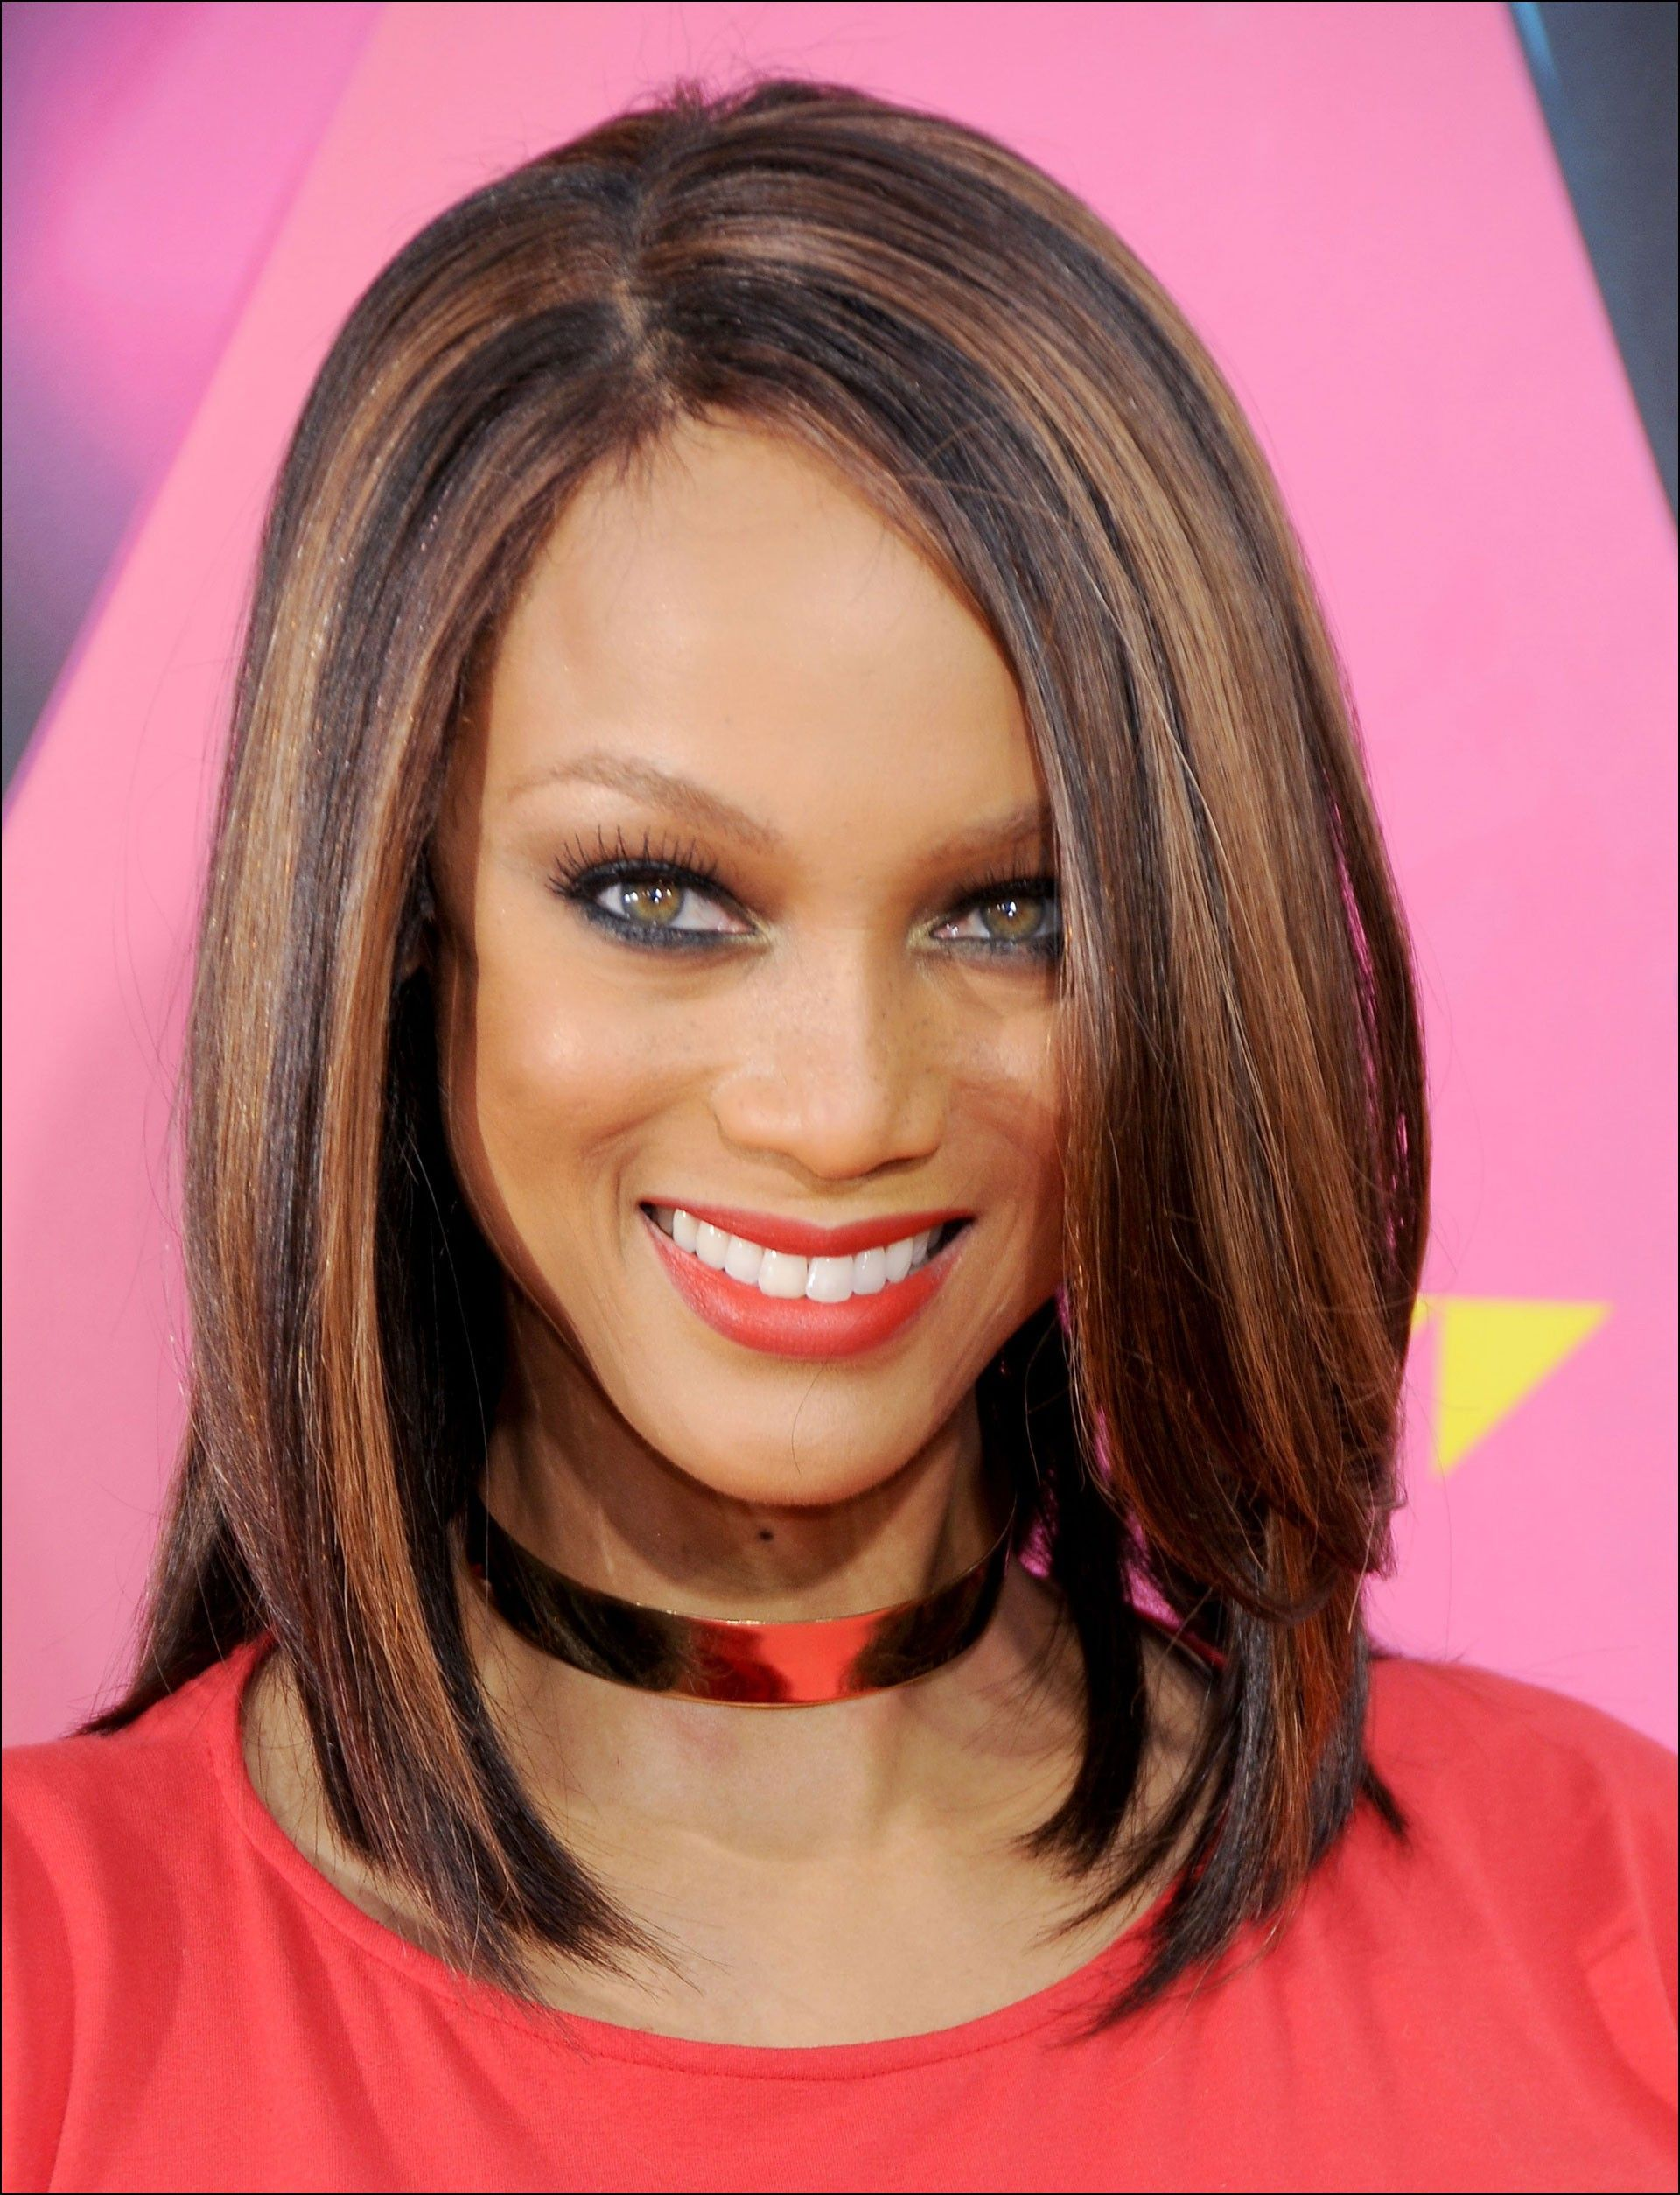 Different Kind Of Haircuts Hair Style Pinterest Haircuts And